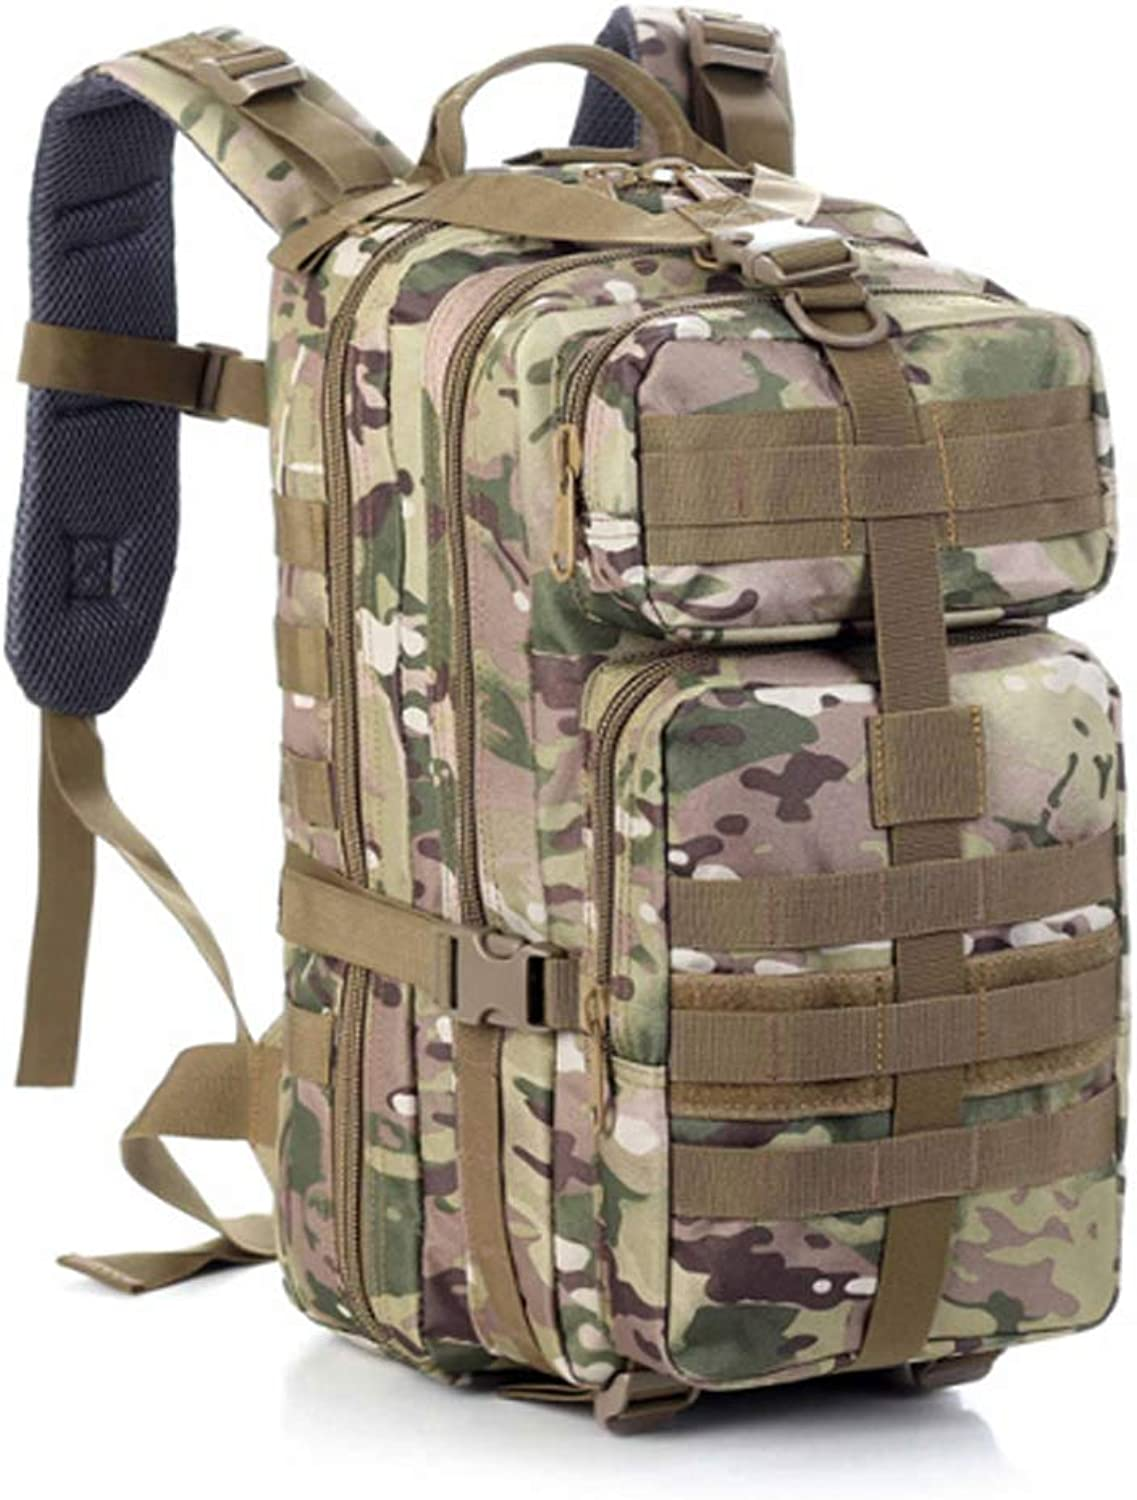 Outdoor Mountaineering Riding Tactical Combination Camouflage Pack Army Fan Large Capacity Hunting Assault Bag Male Travel Backpack